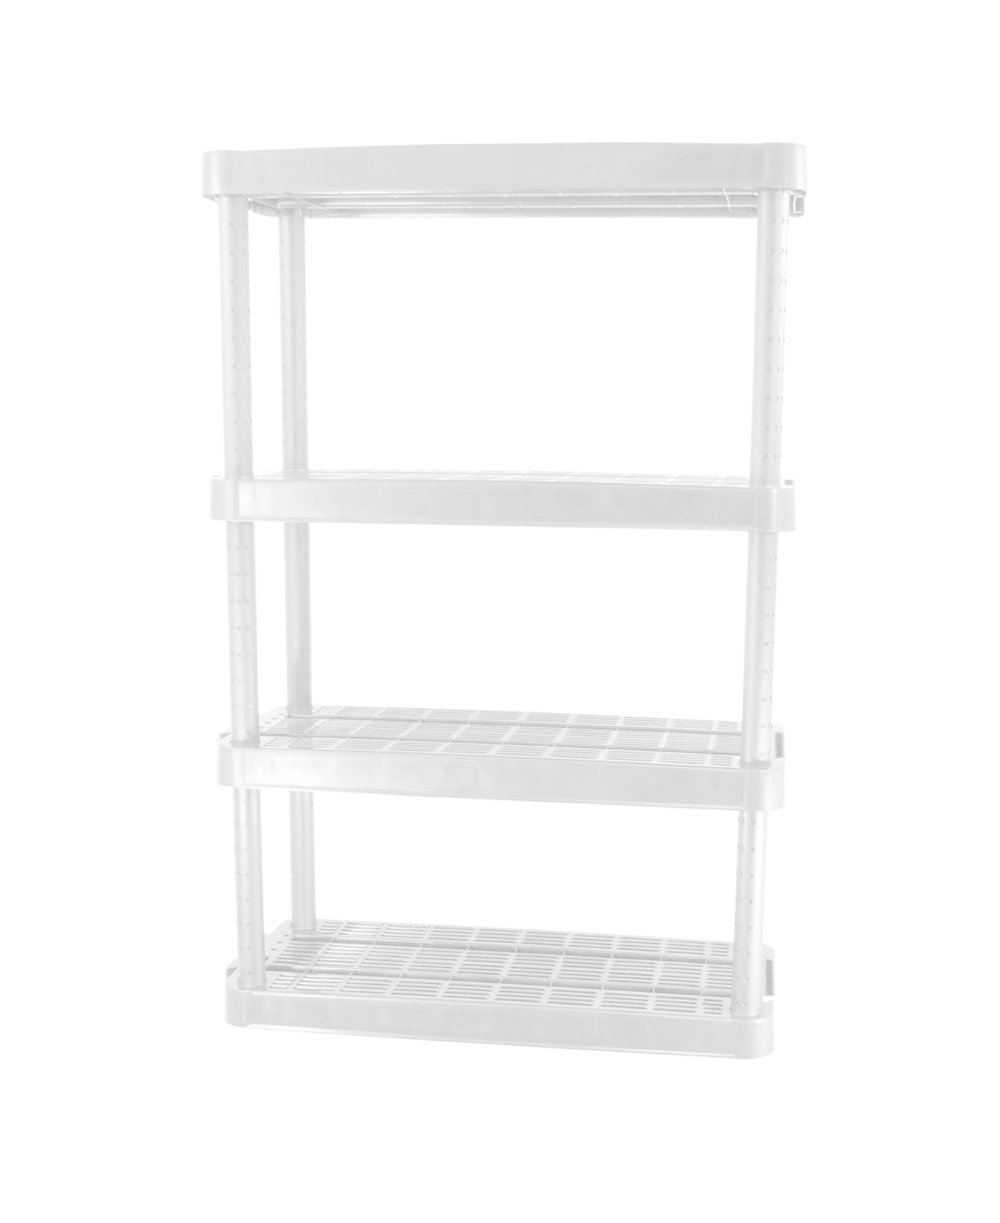 Gracious Living Adjustable 4-Shelf Medium Duty Shelving Unit 91072-1C